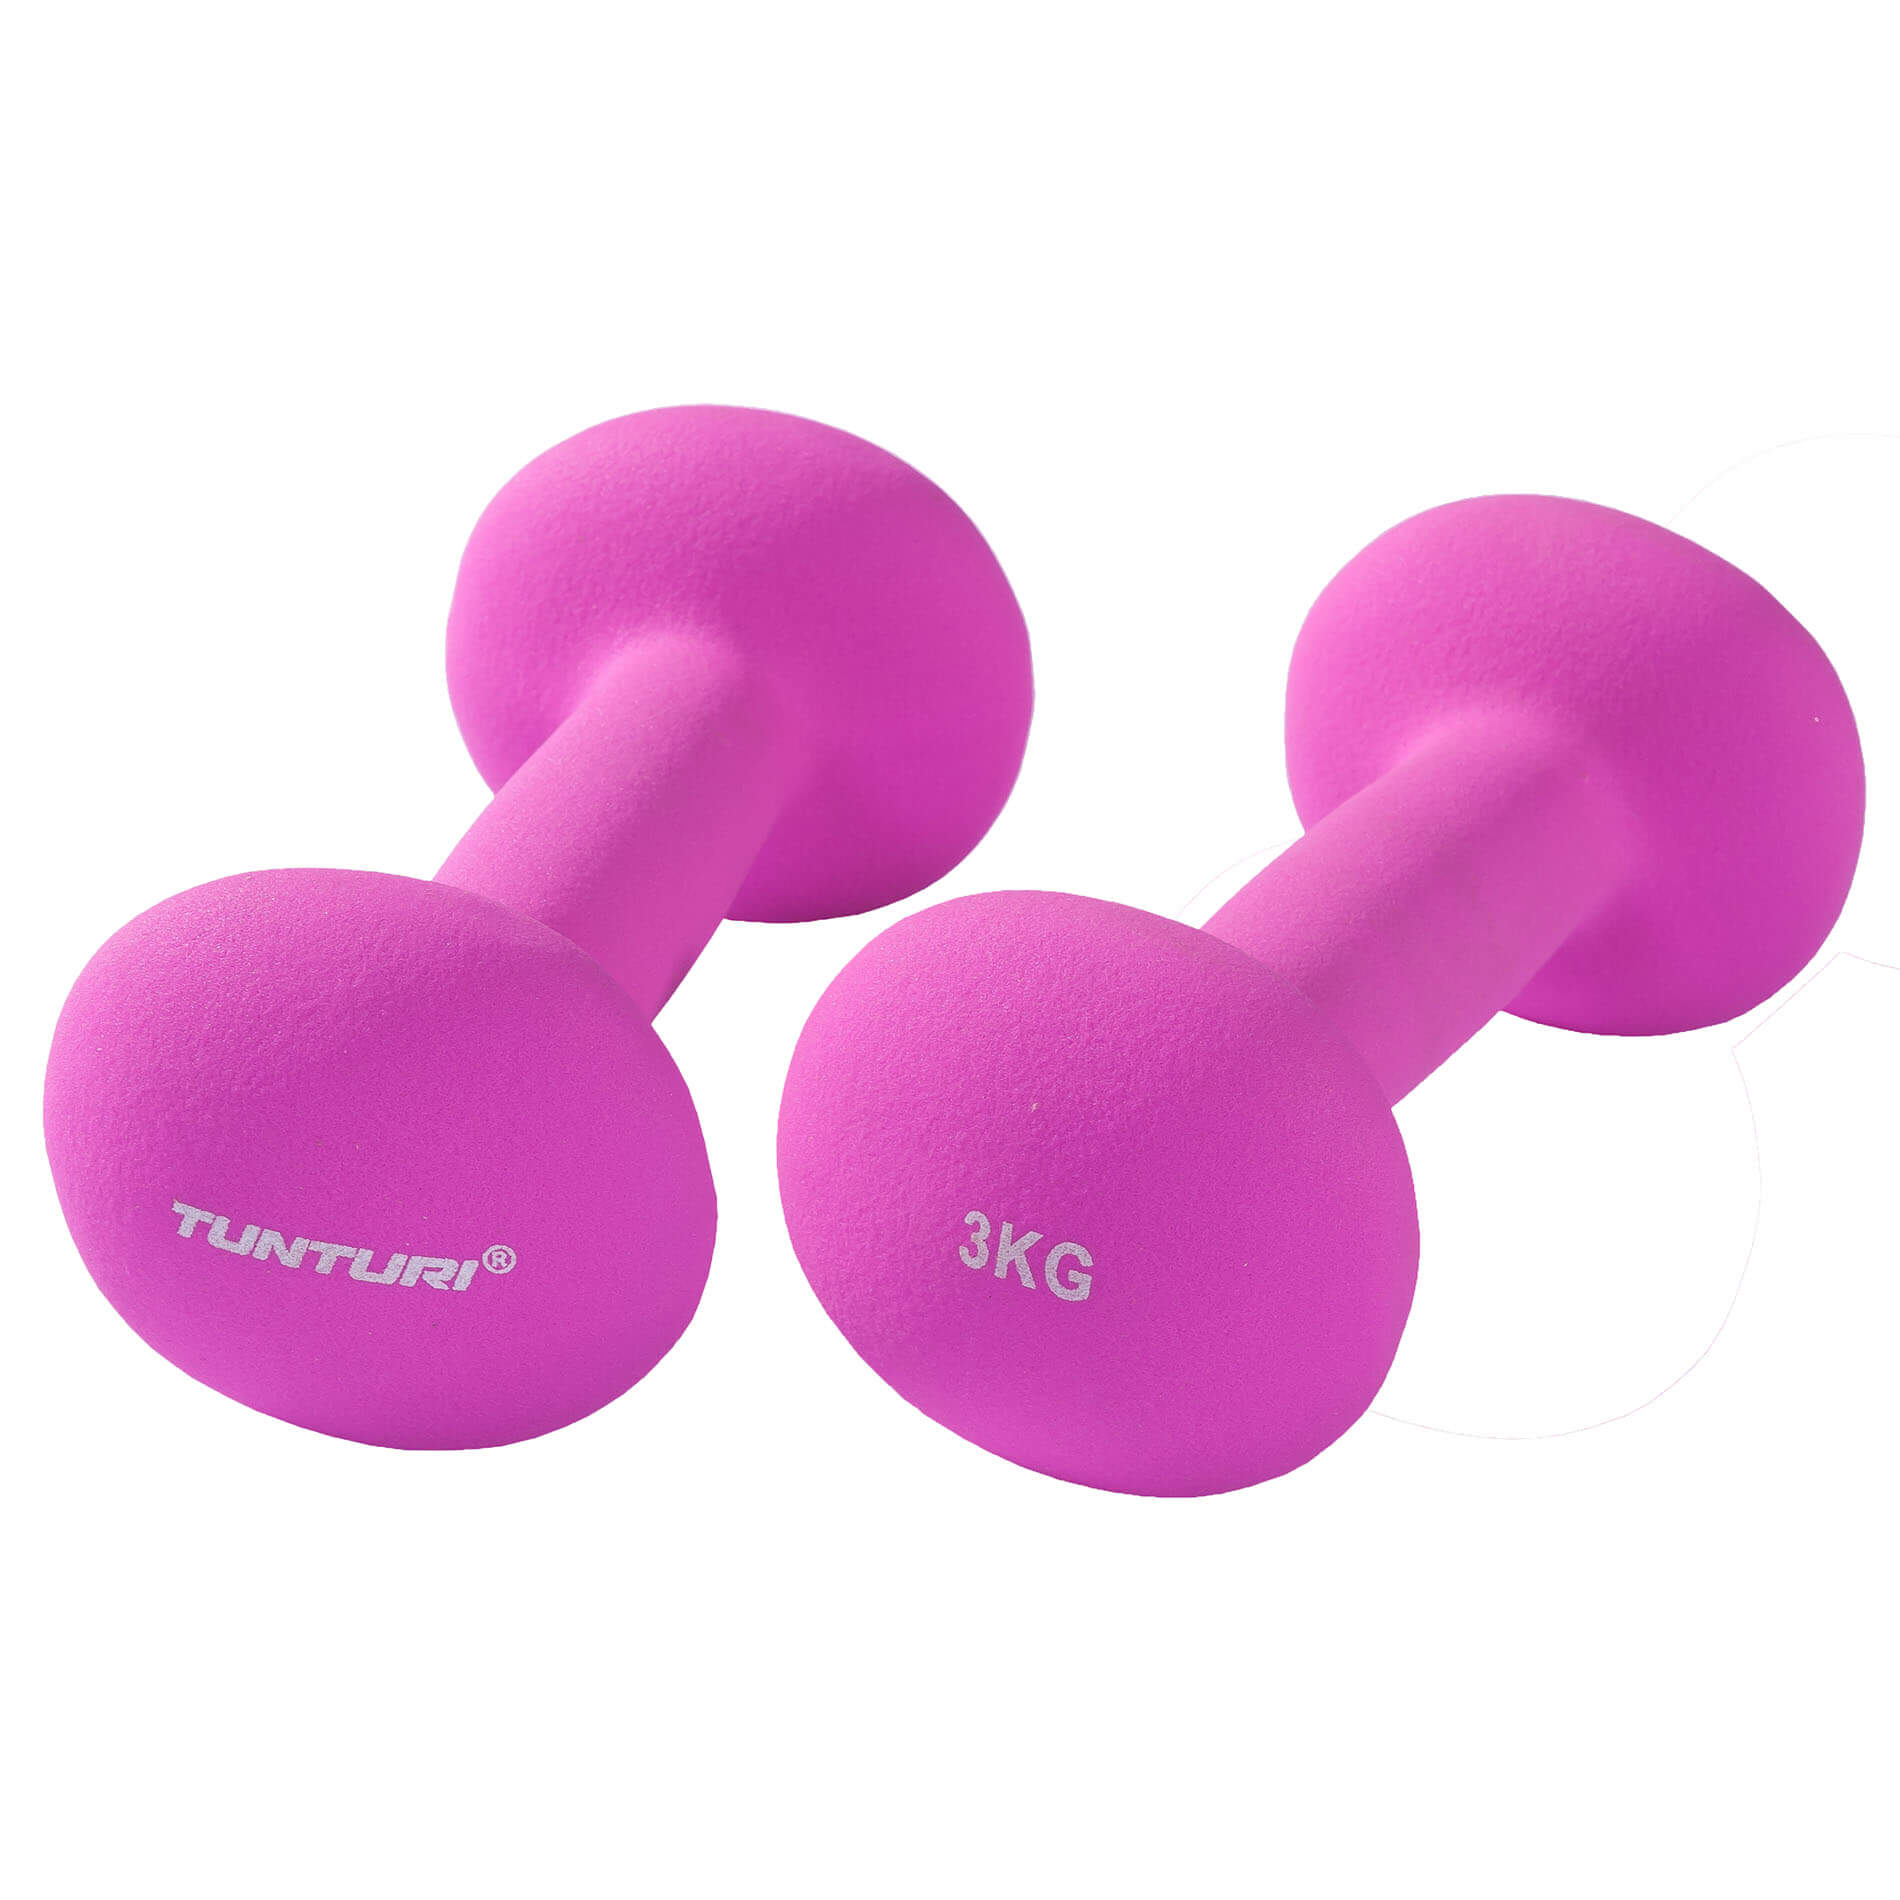 Dumbbells - Neoprene